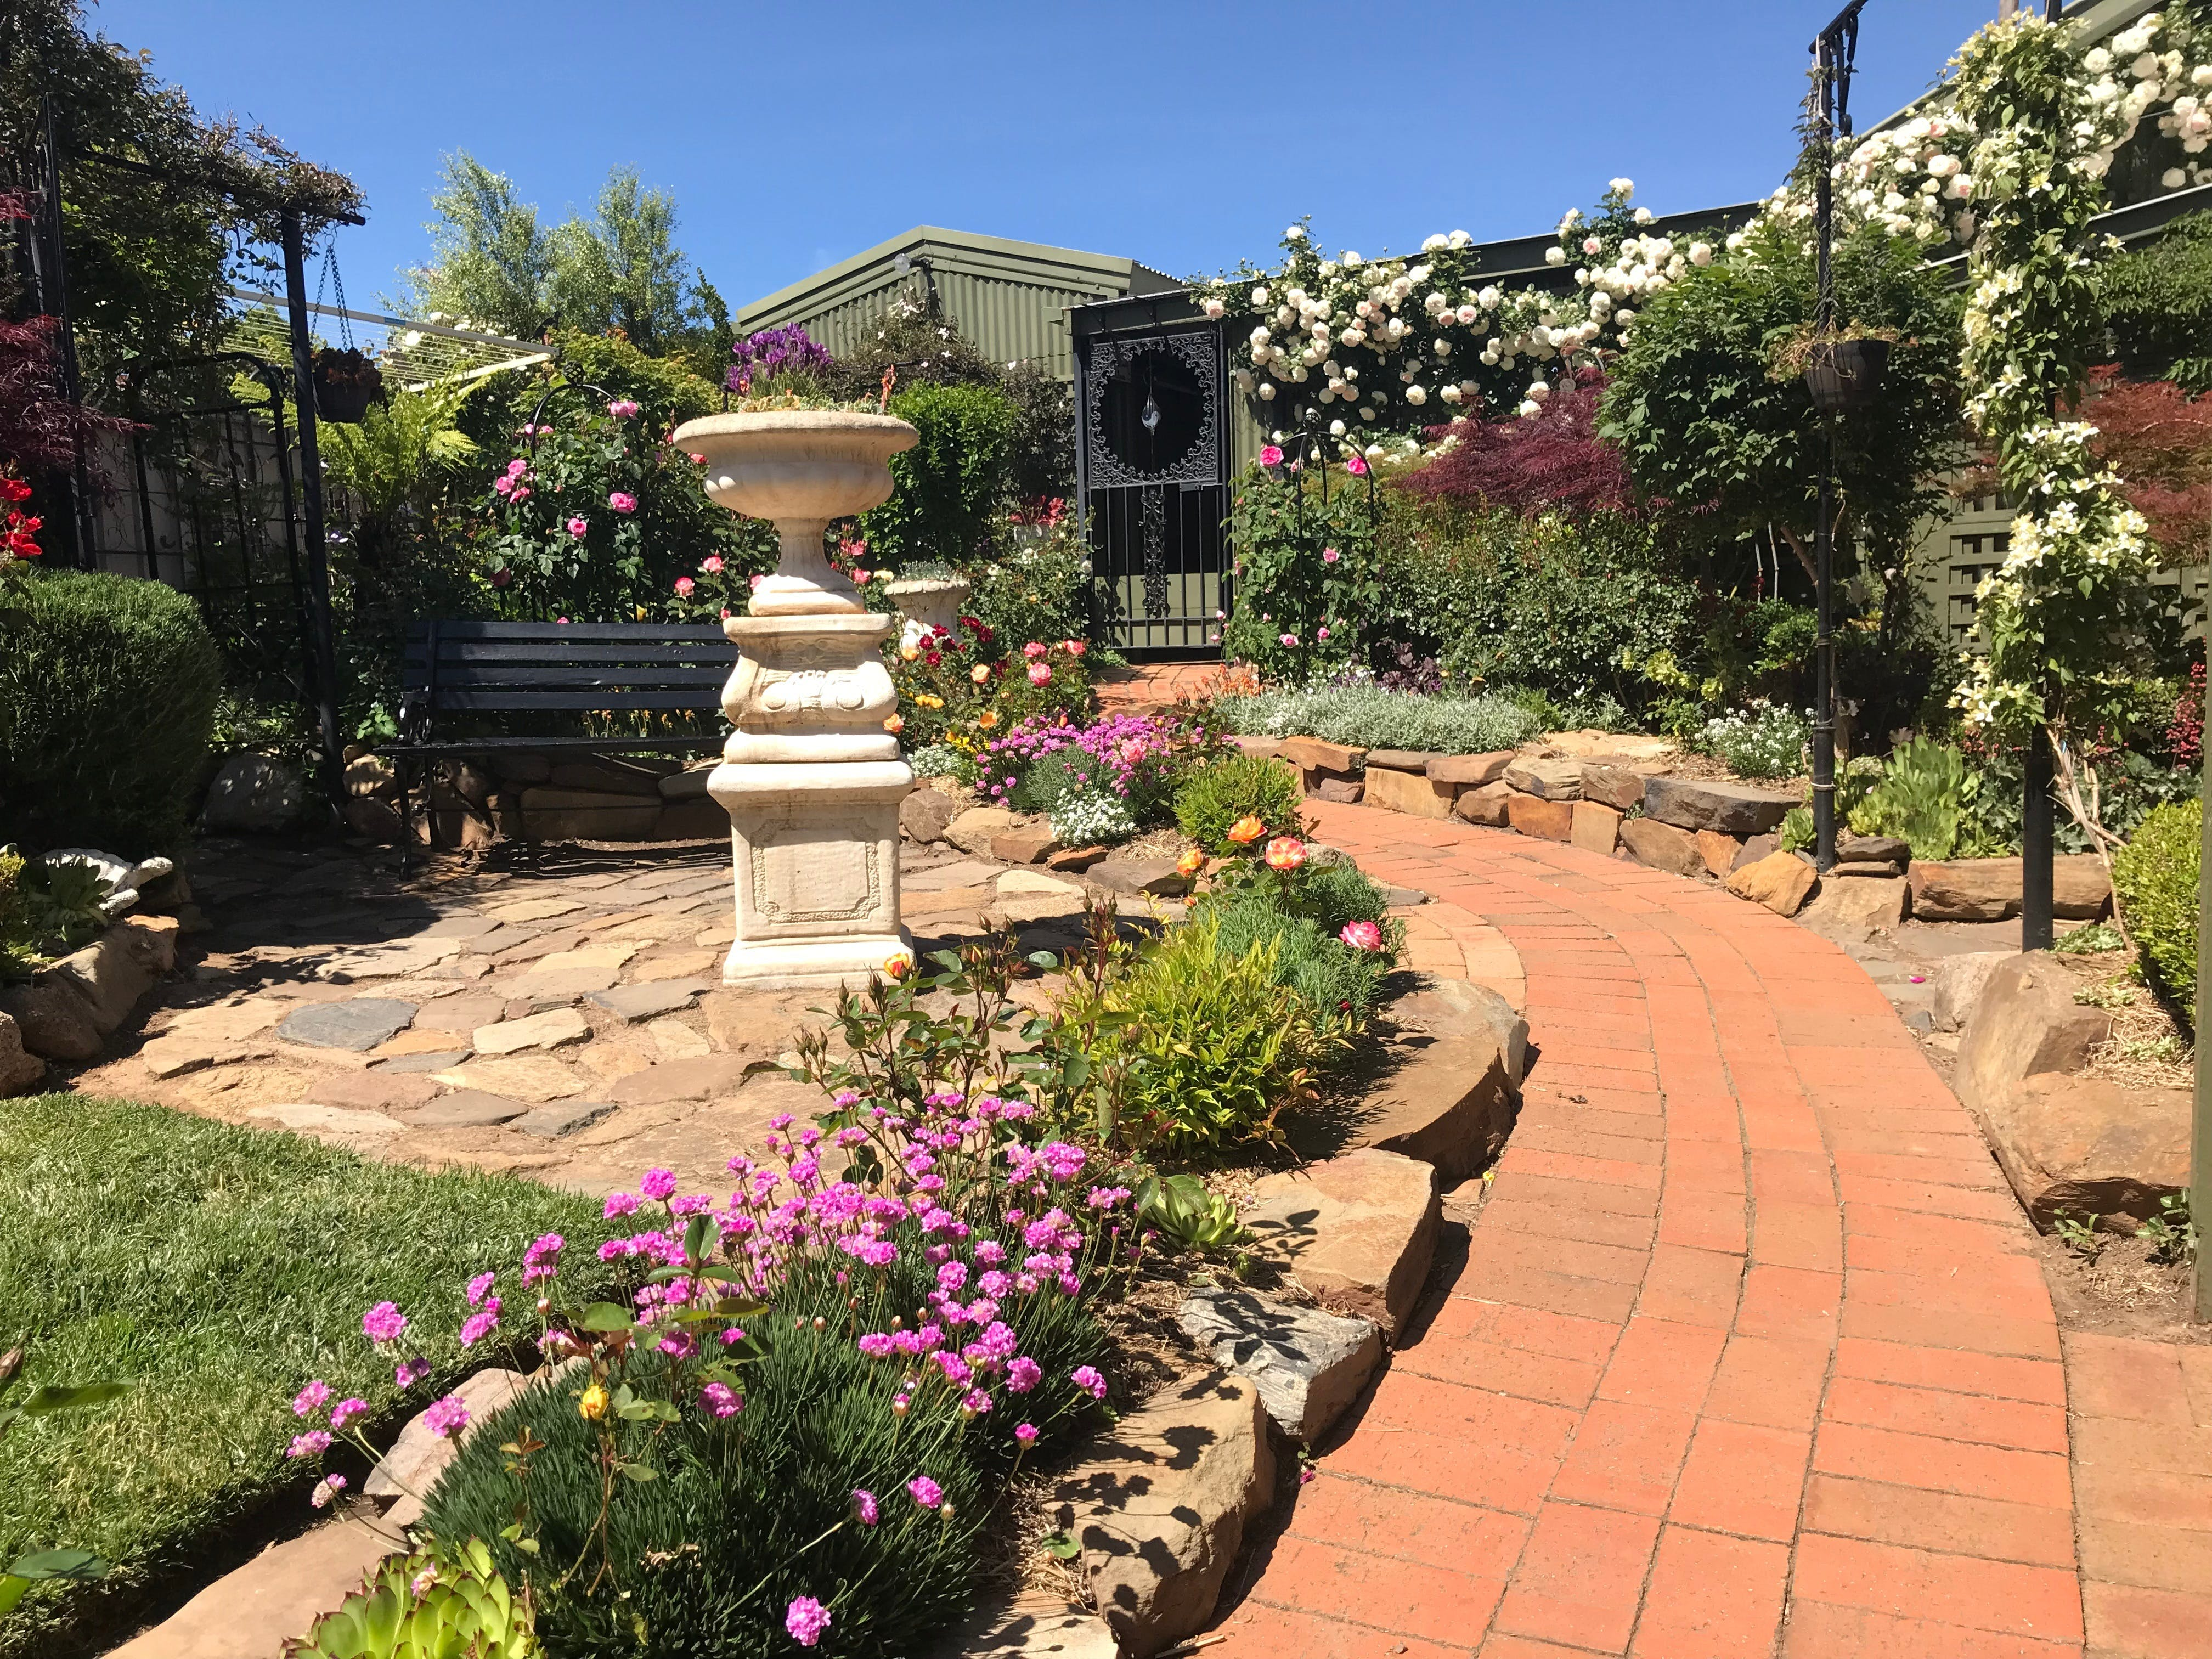 Crookwell Garden Festival - Accommodation in Surfers Paradise